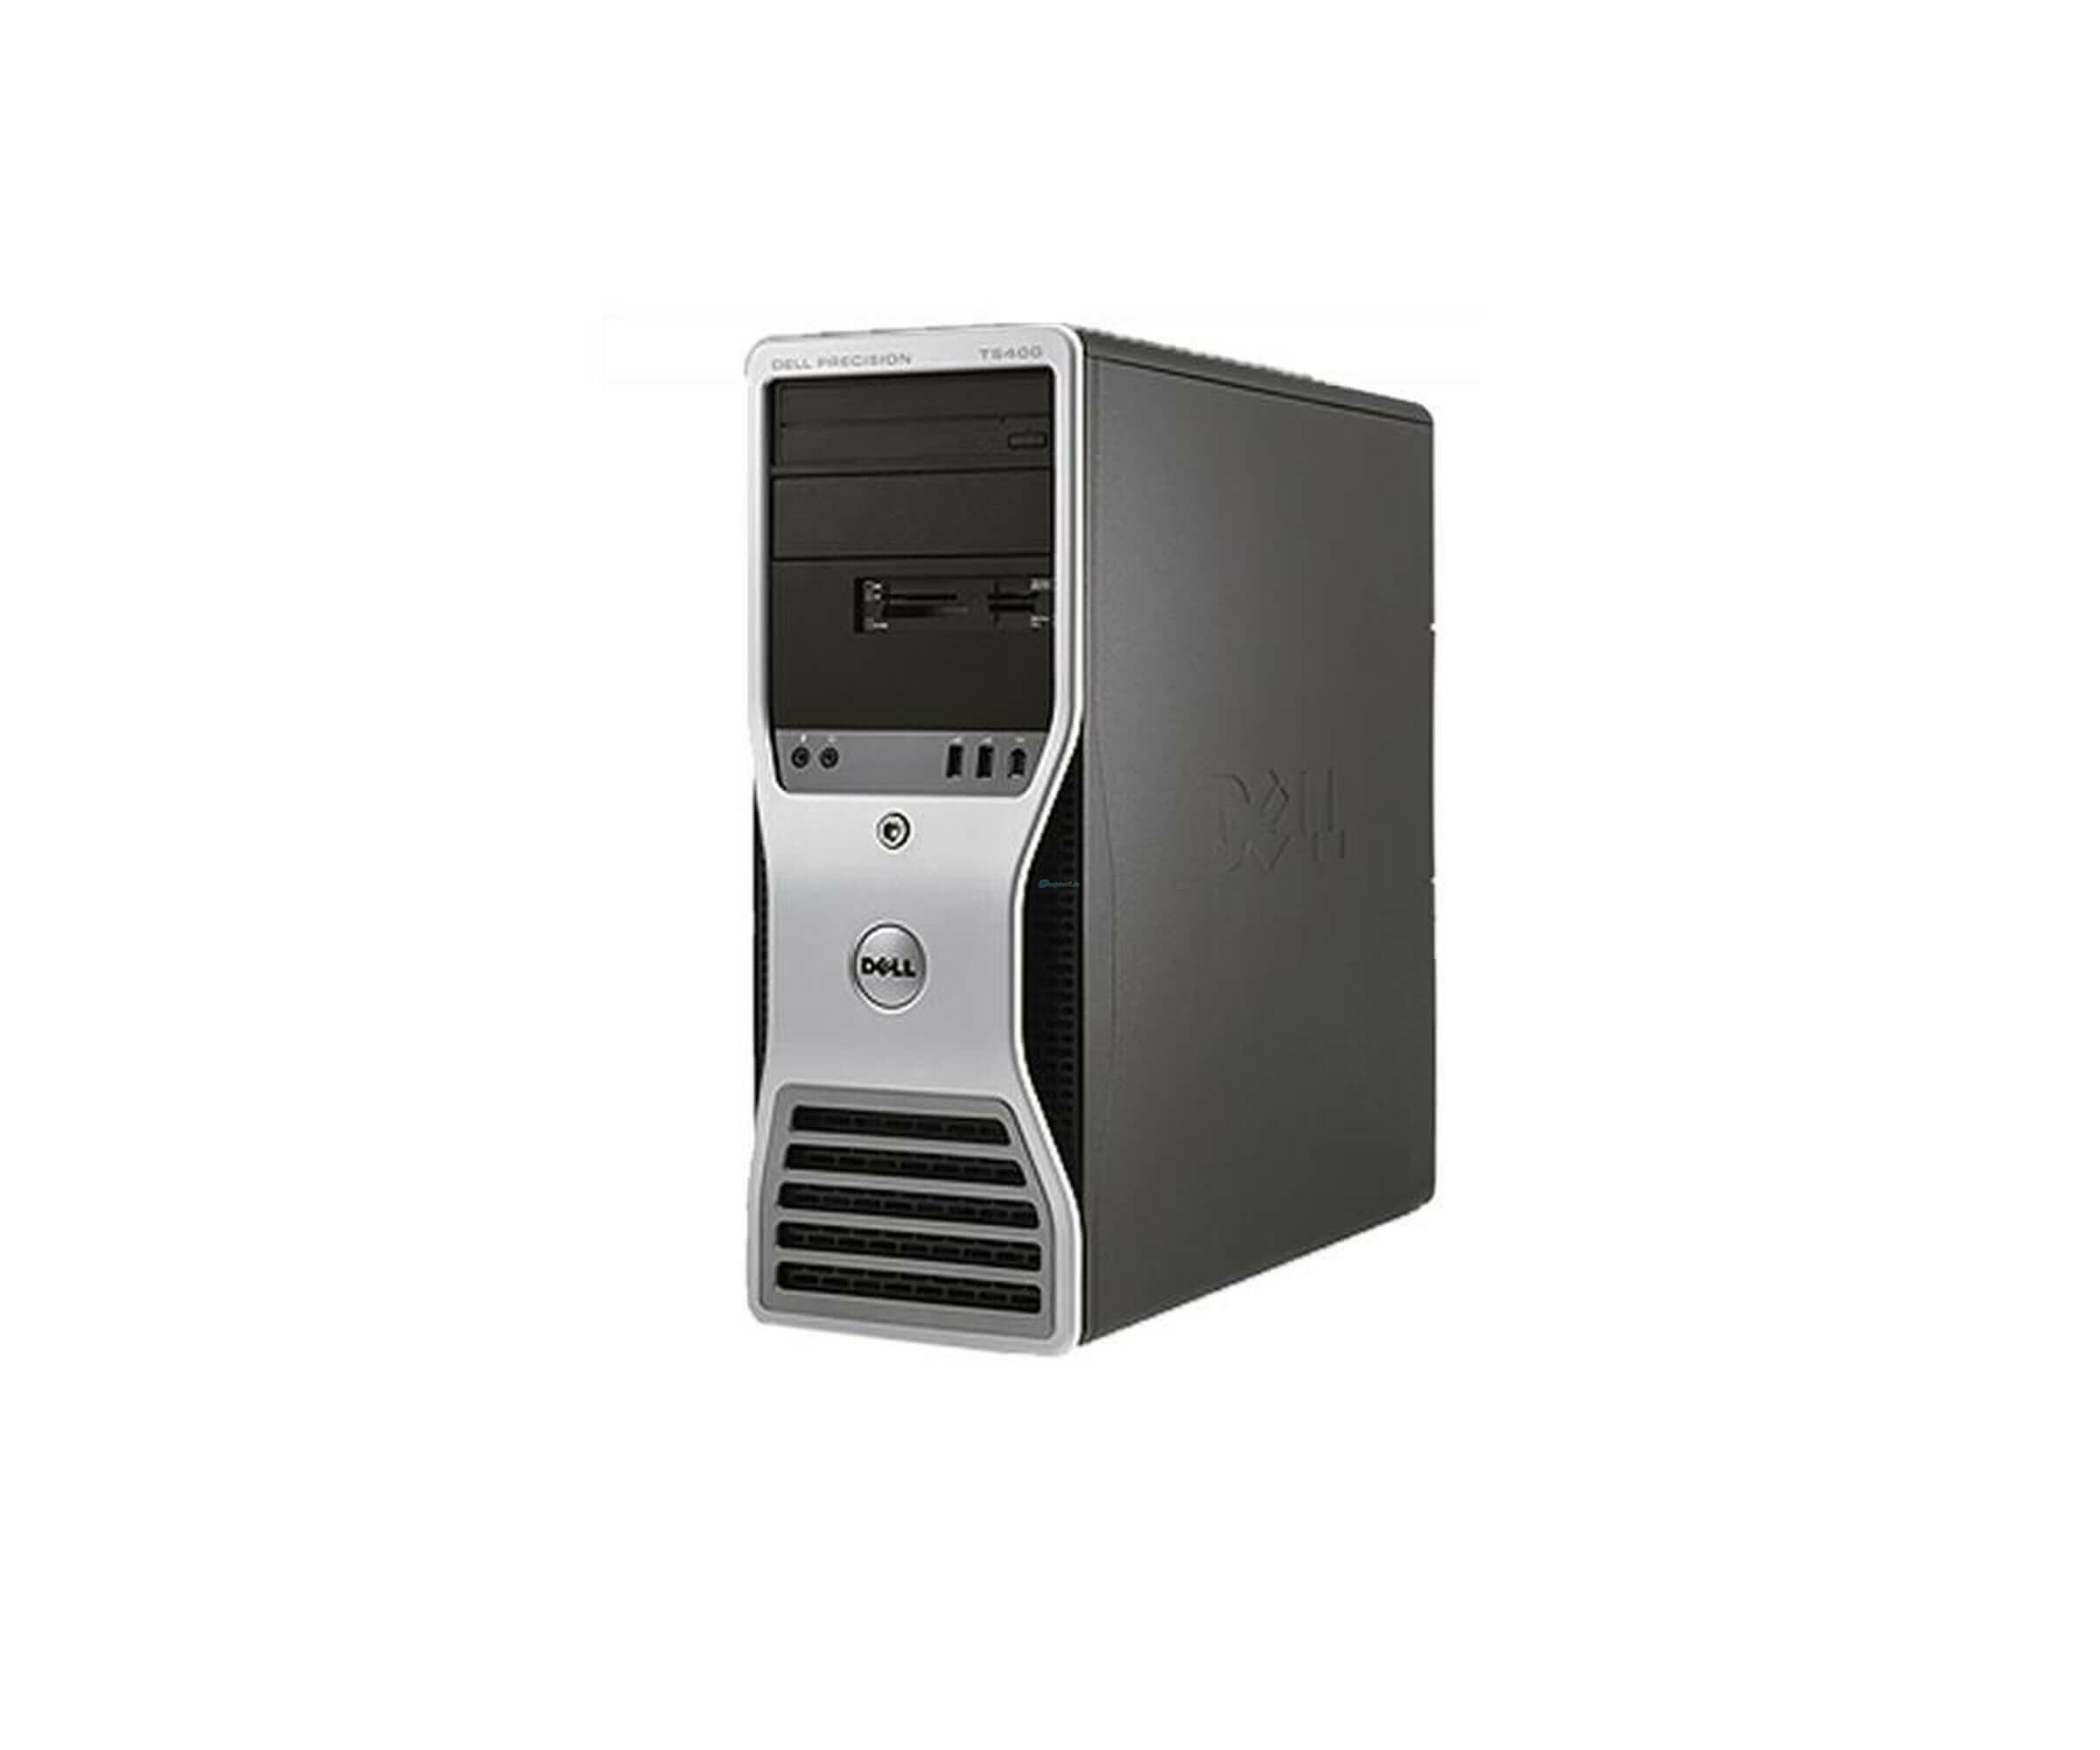 PC Systeme, Computer - Dell Precision T5400 Tower Xeon E5430 2,66GHz 4GB Ram 80GB HDD DVD Gebraucht  - Onlineshop Noteboox.de